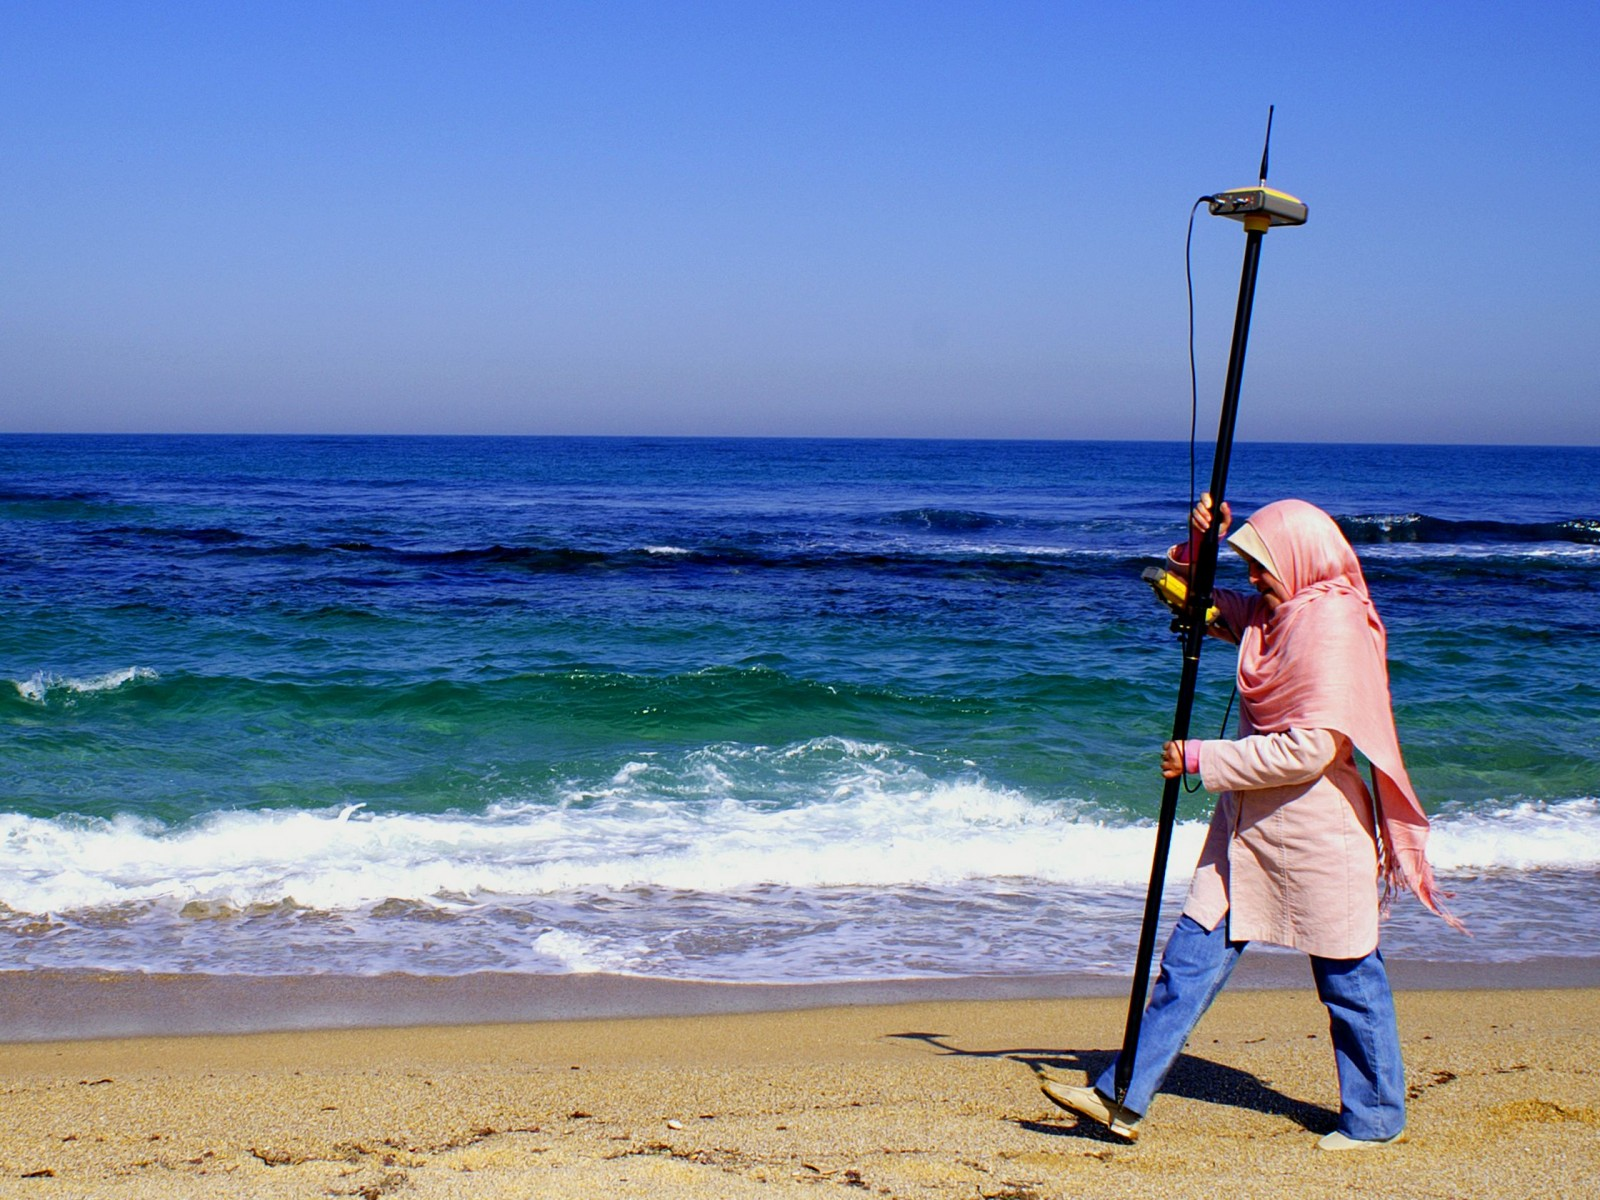 How visible are women in geoscience? (Mapping the Algerian shoreline credit: Filippo Dallosso, distributed via imaggeo.egu.eu)